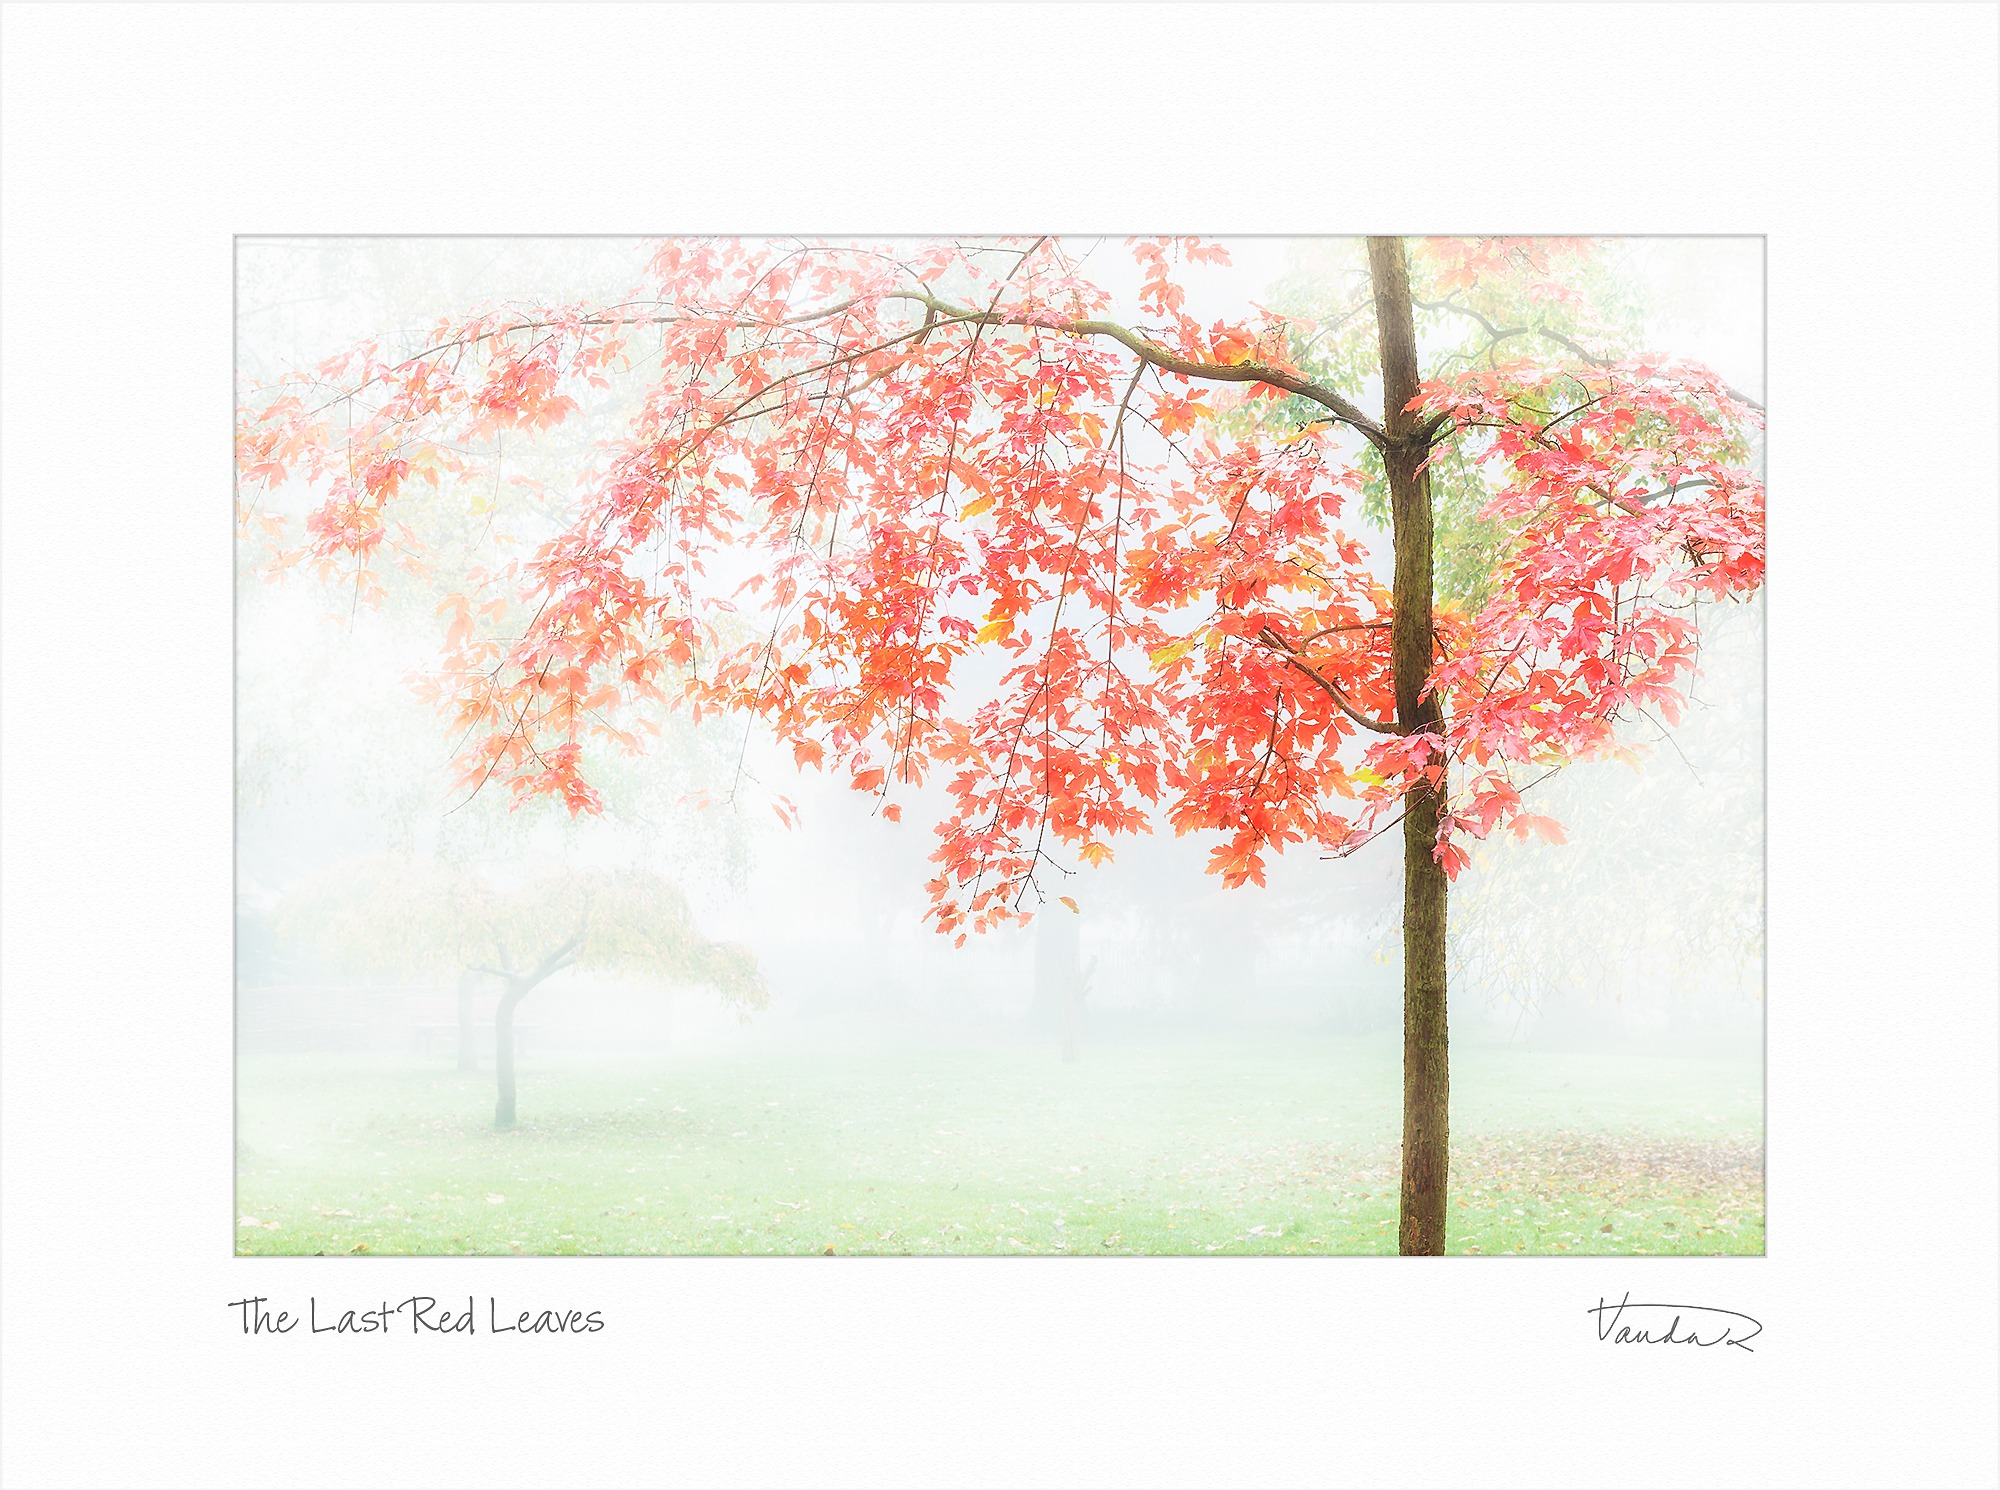 The Last Red Leaves